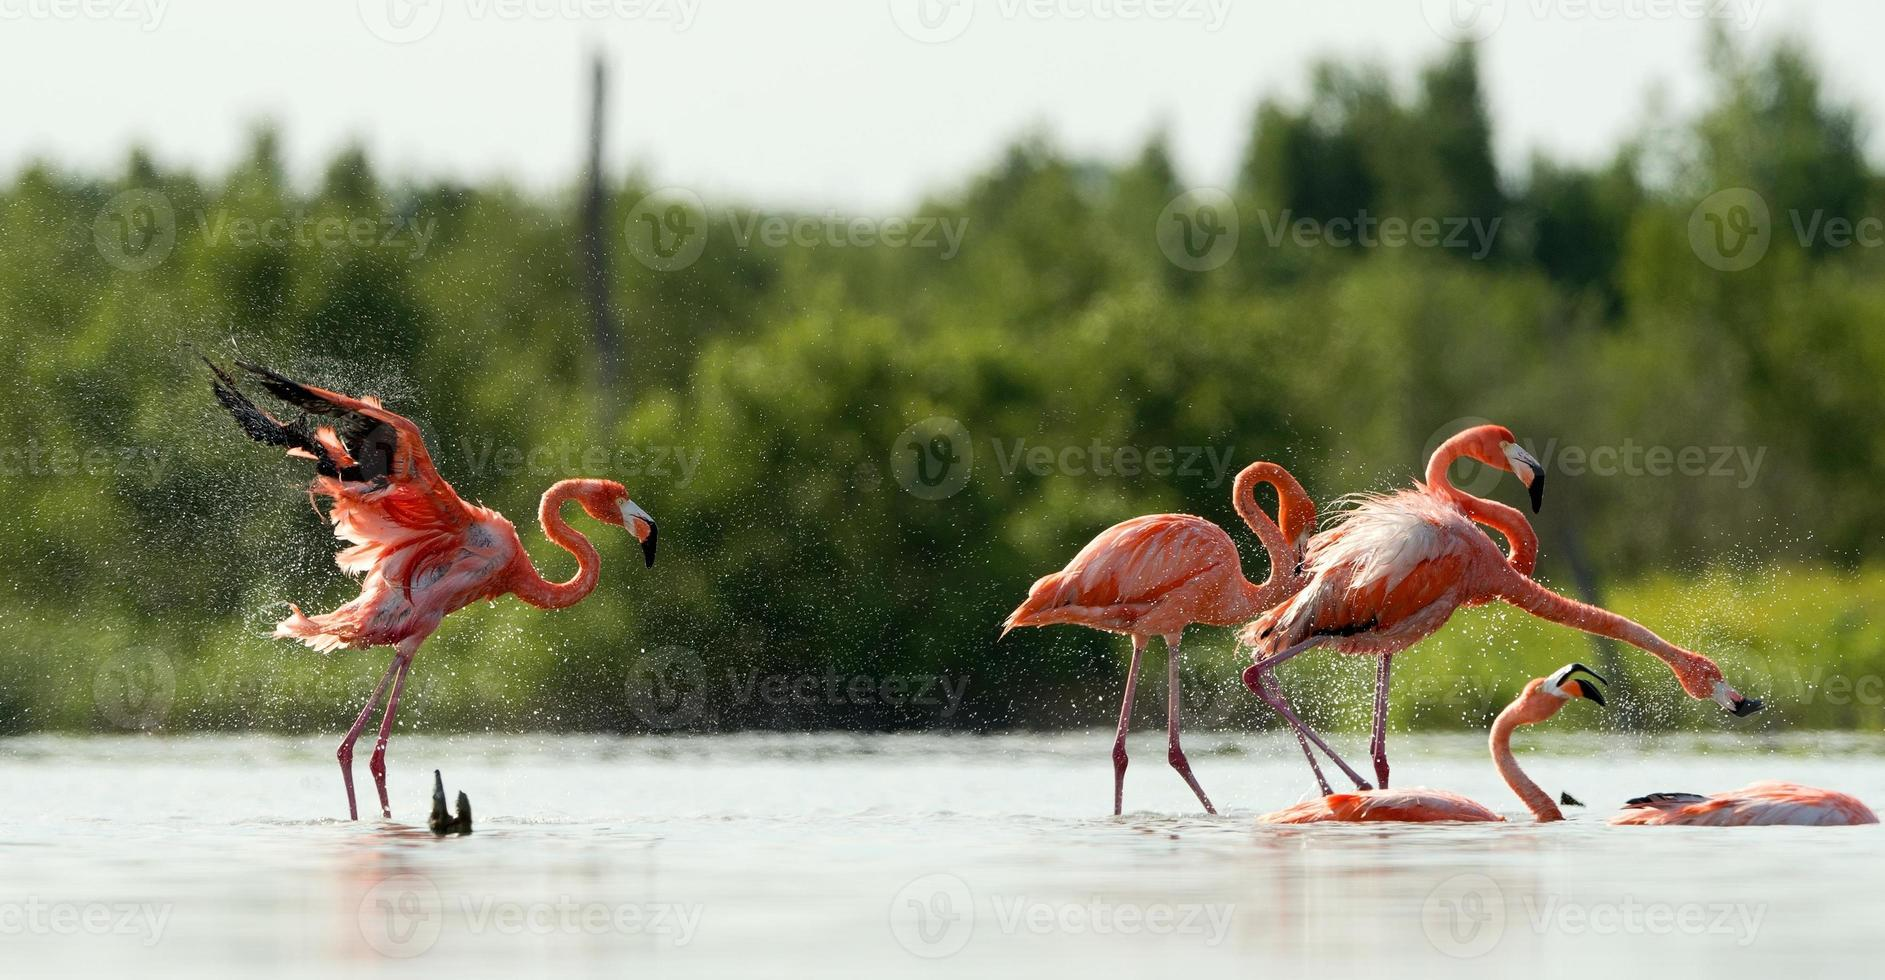 The flamingo runs on water with splashes photo